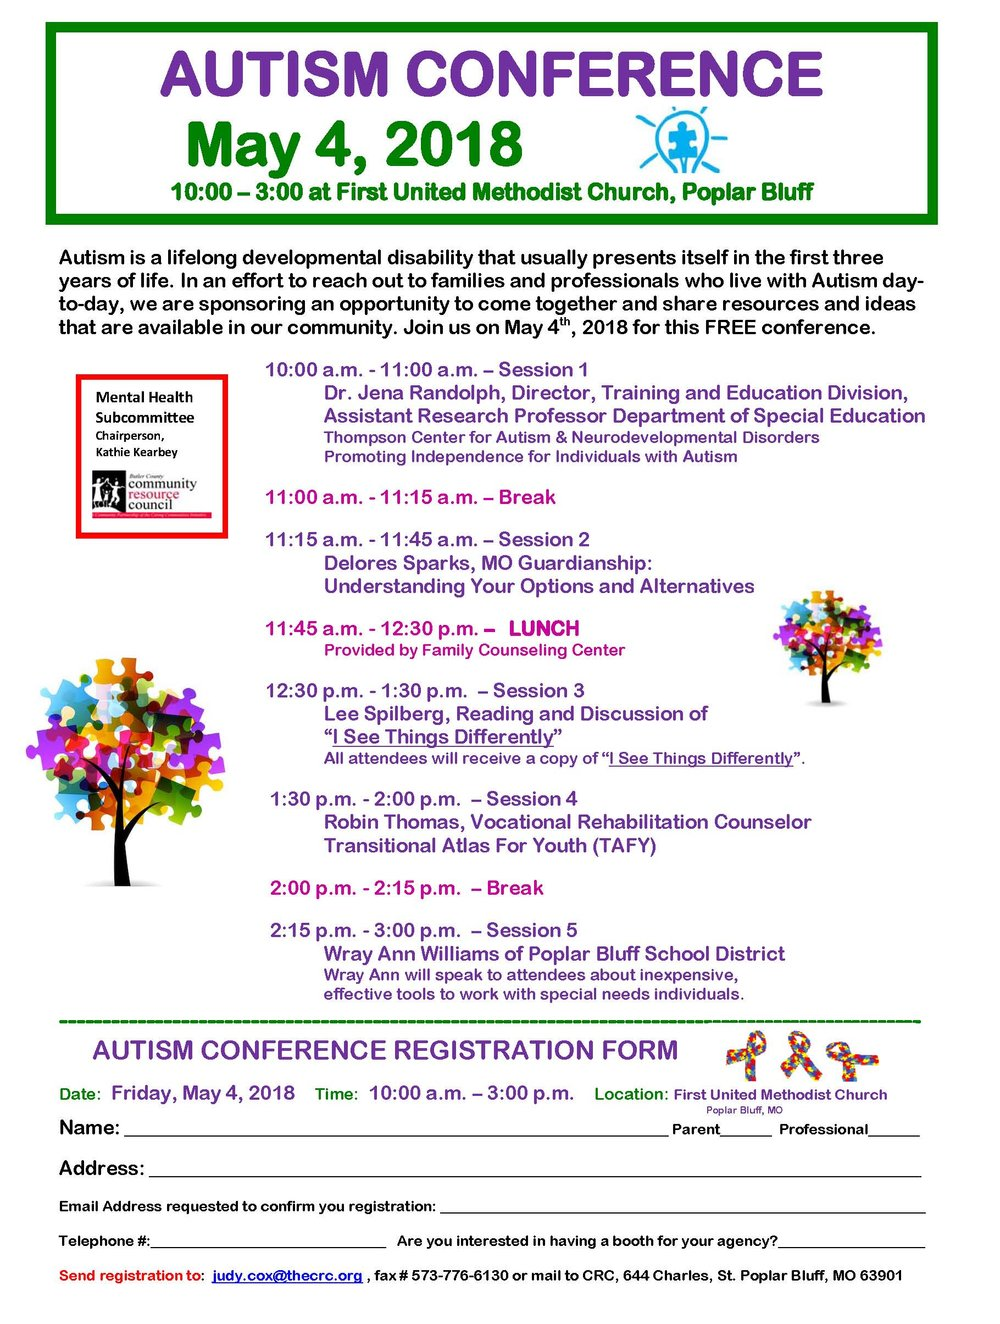 Autism Conference Registration Flyer - May 4, 2018.jpg